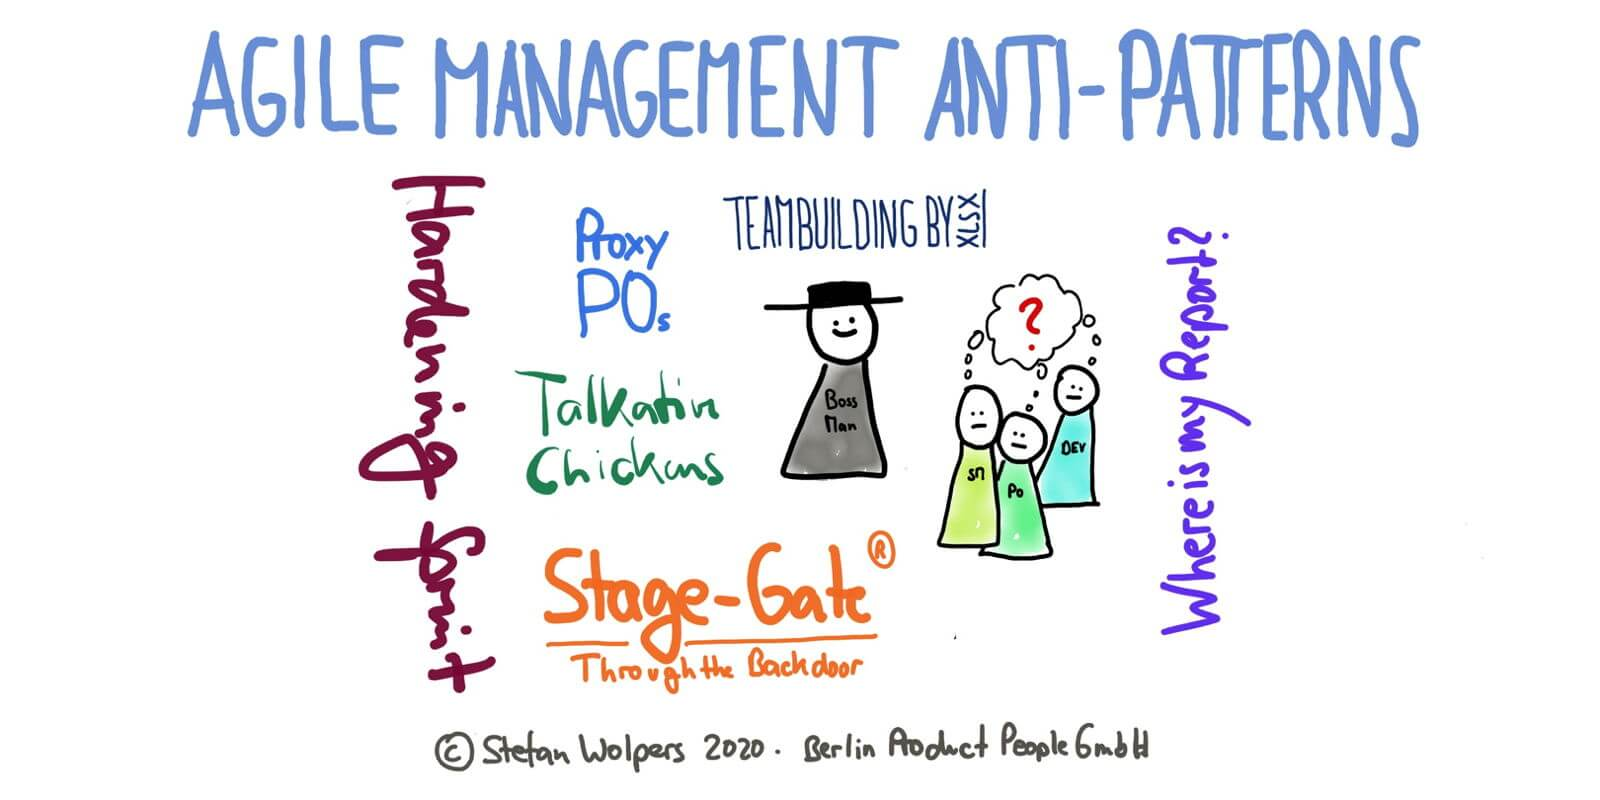 Agile Management Anti-Patterns